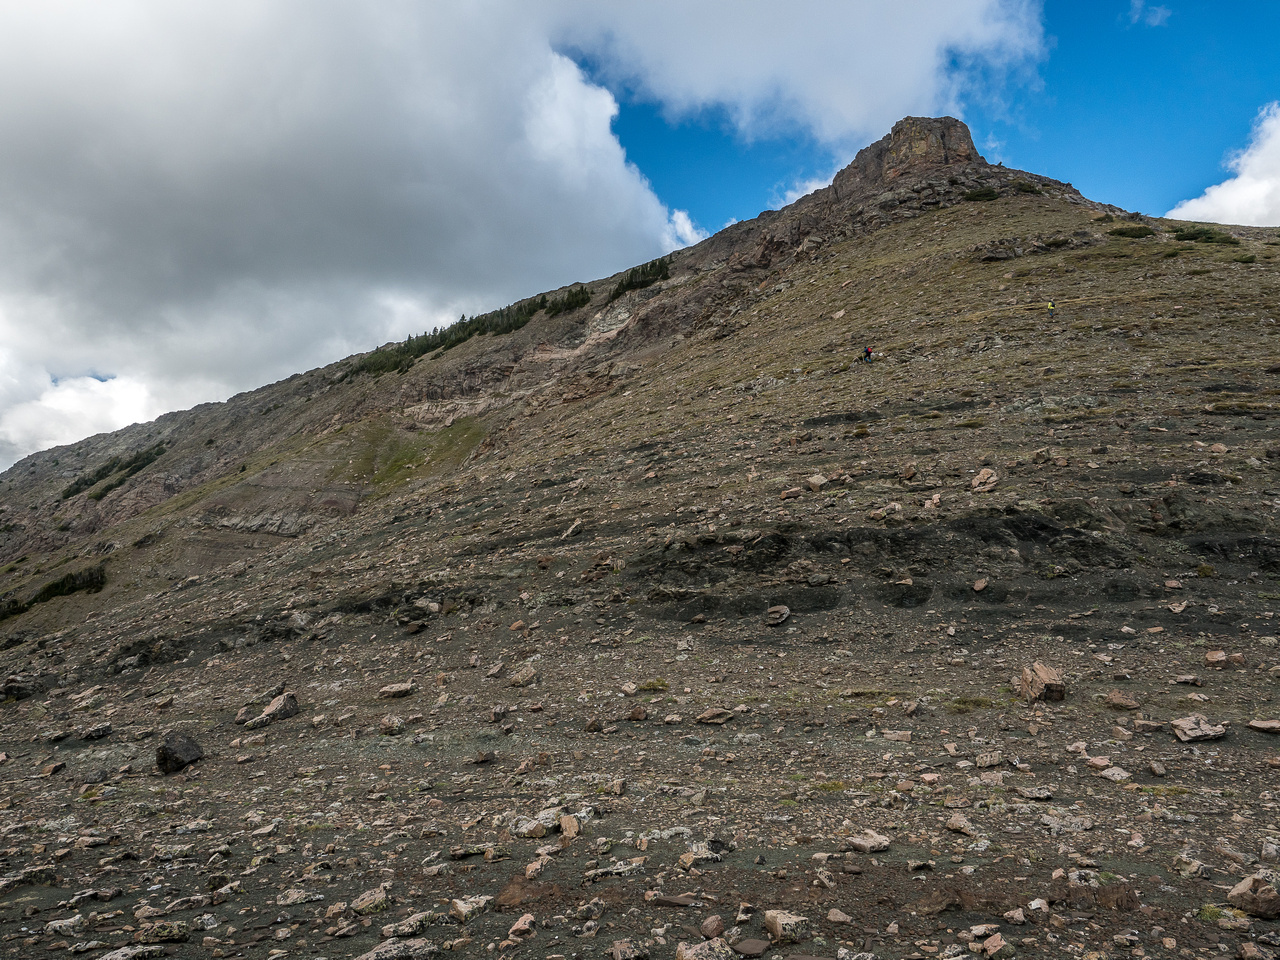 Looking up at several hundred meters to the summit of Ma Butte from the col.